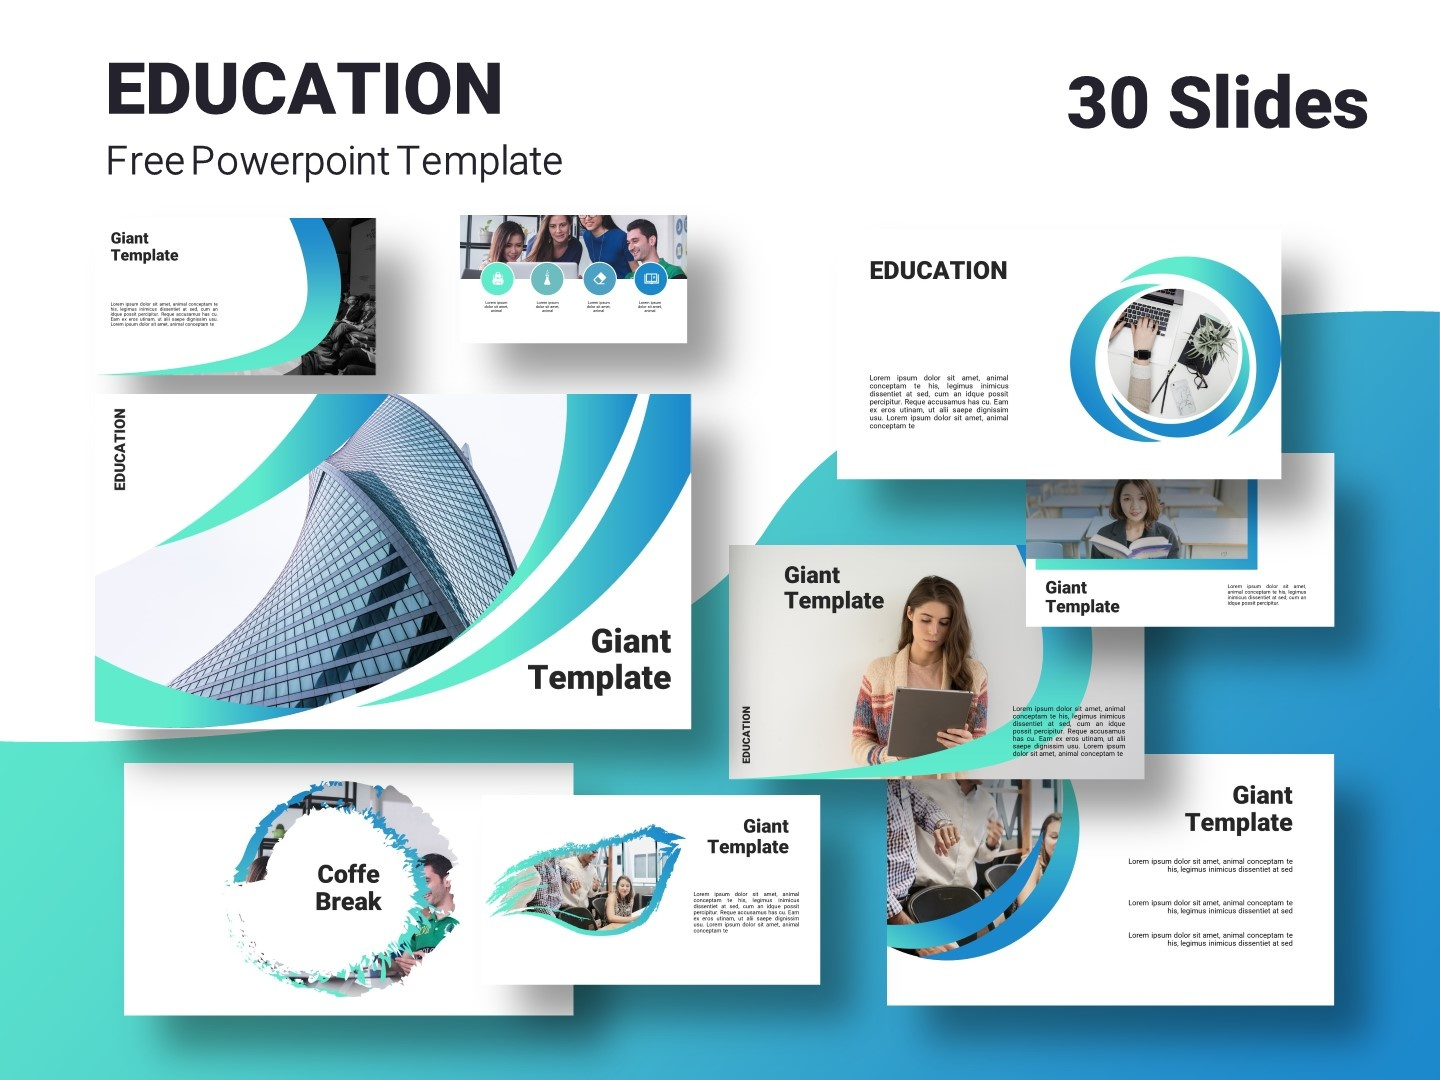 Education Free Powerpoint Template By Giant Template On Dribbble